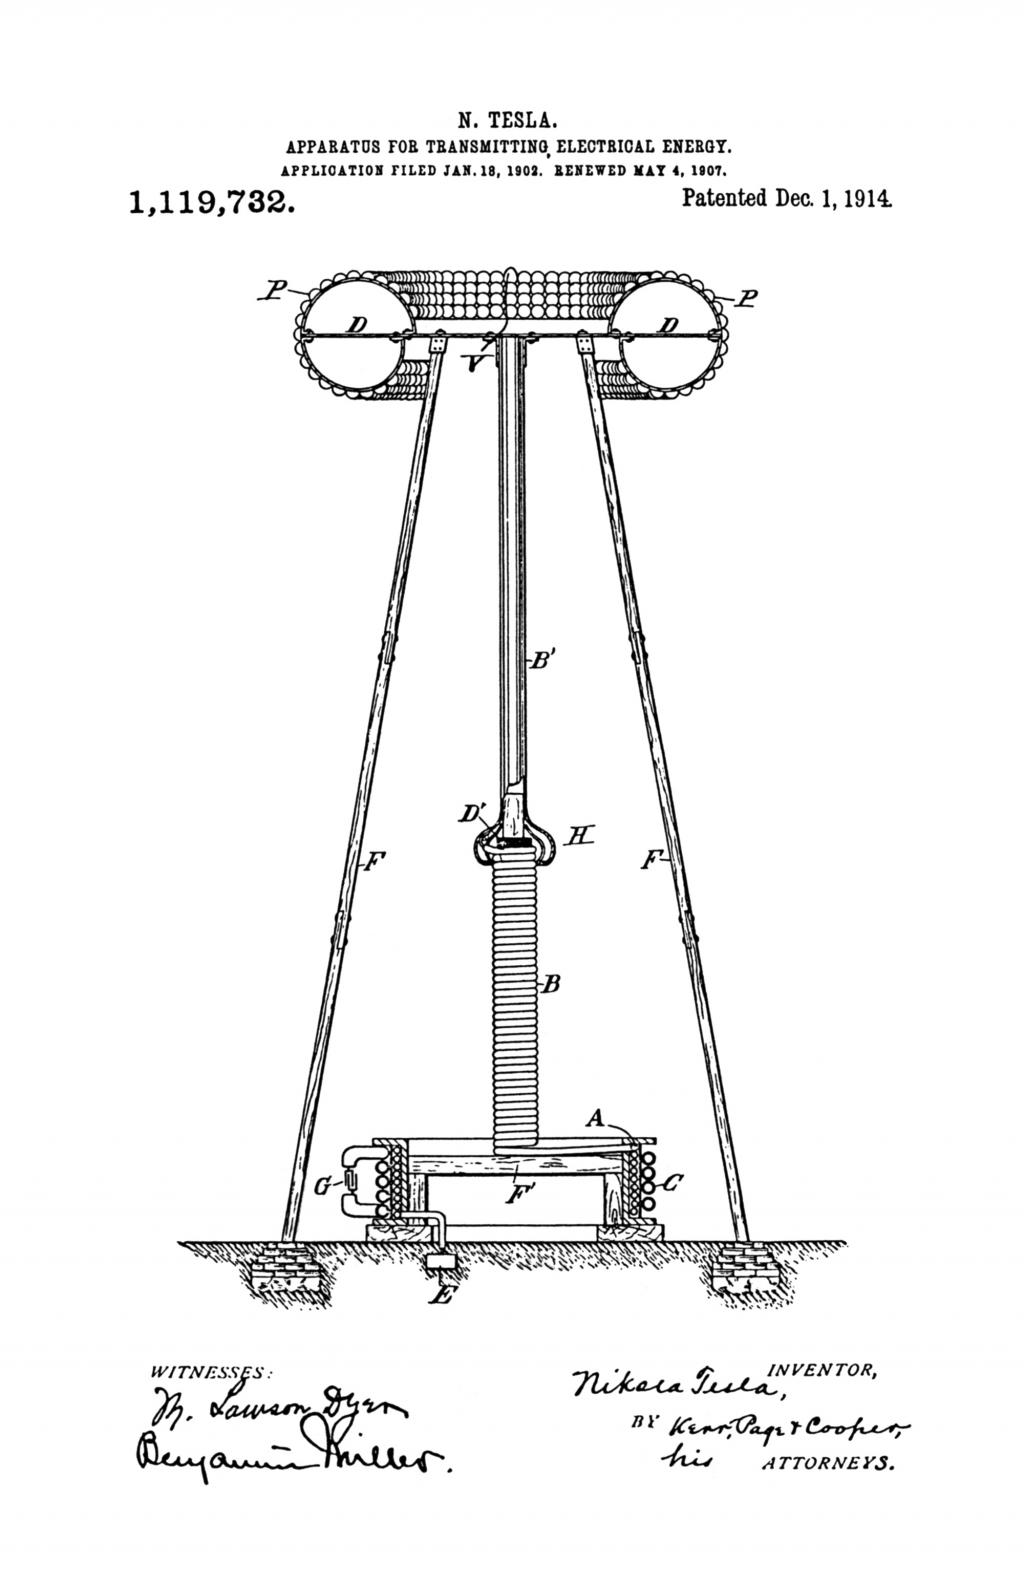 Nikola Tesla U.S. Patent 1,119,732 - Apparatus for Transmitting Electrical Energy - Image 1